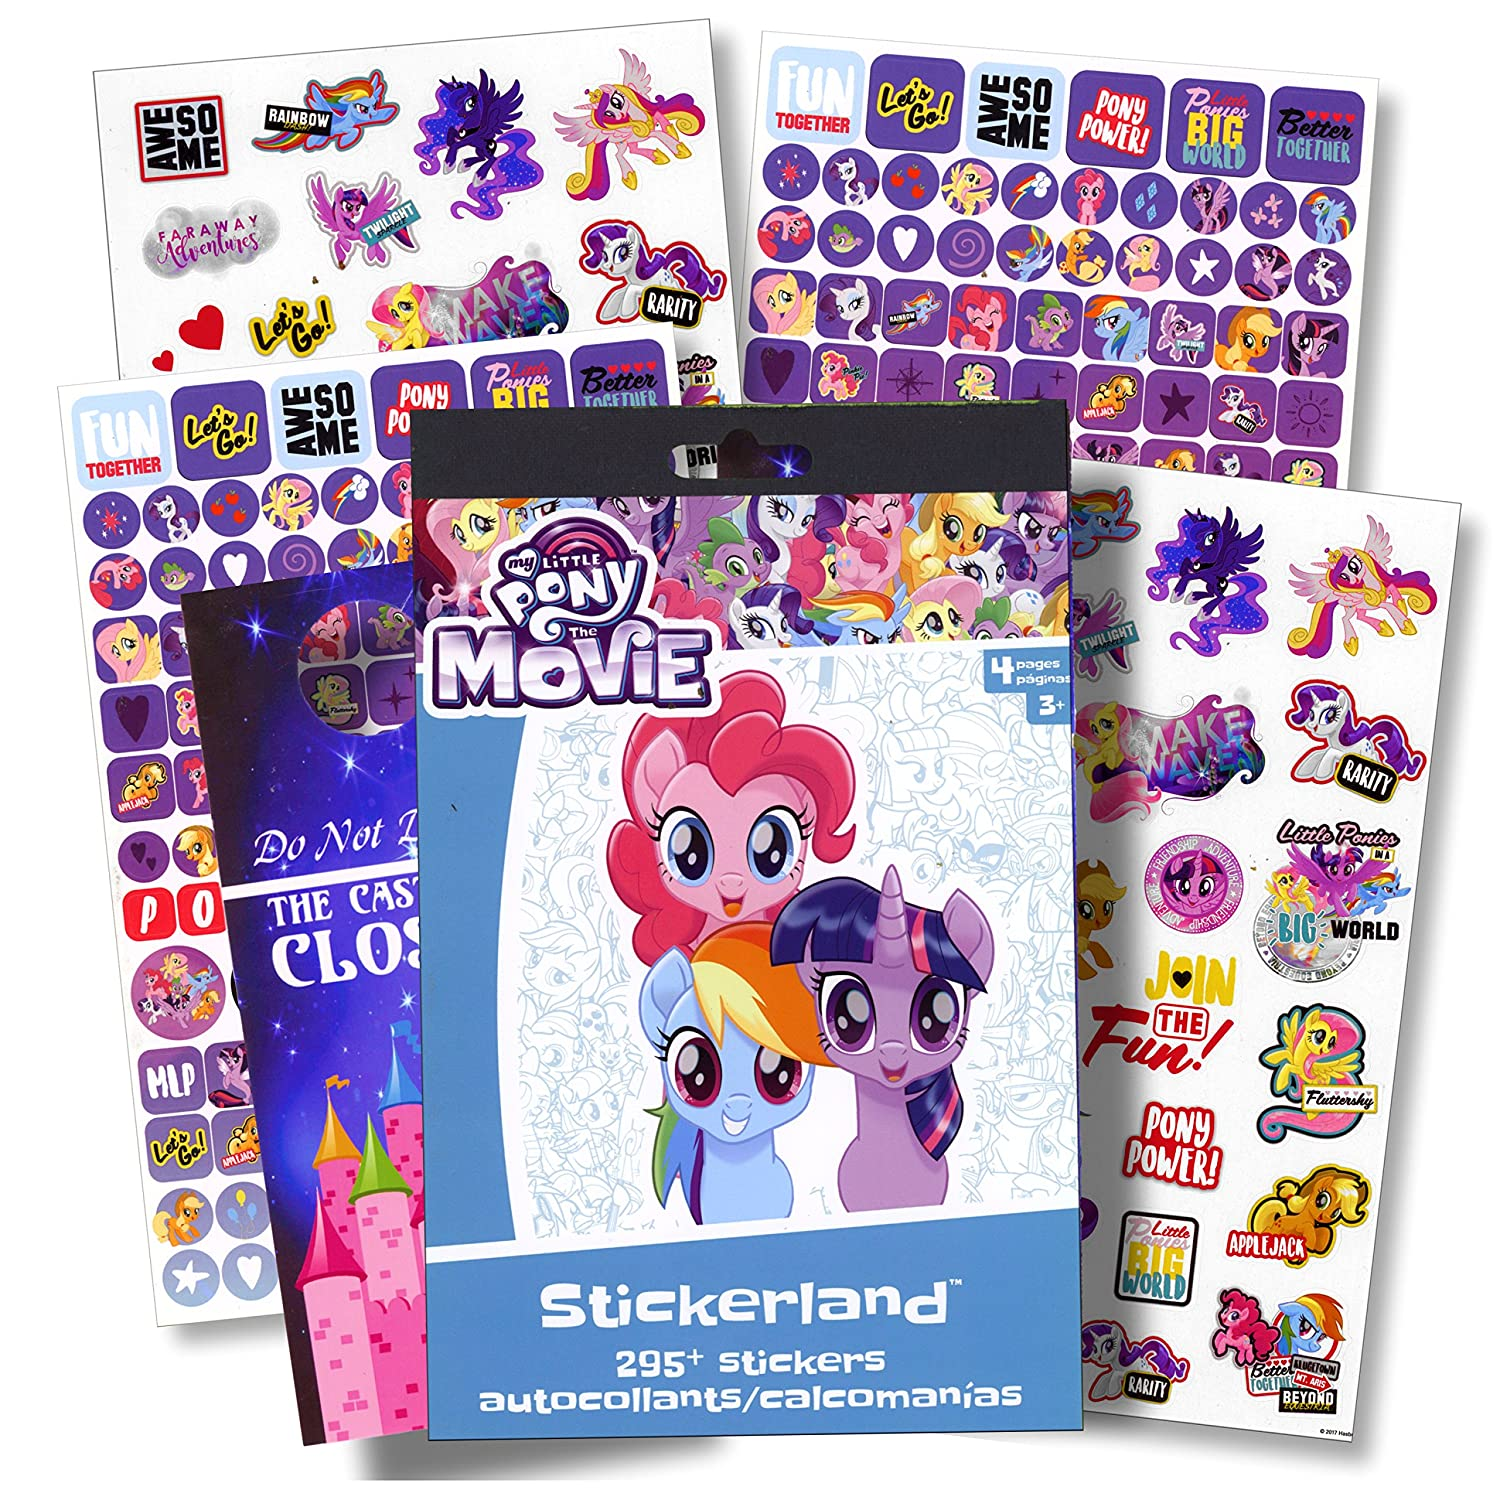 My Little Pony The Movie My Little Pony Stickers Over 295 Stickers Bundled with Specialty Door Hanger